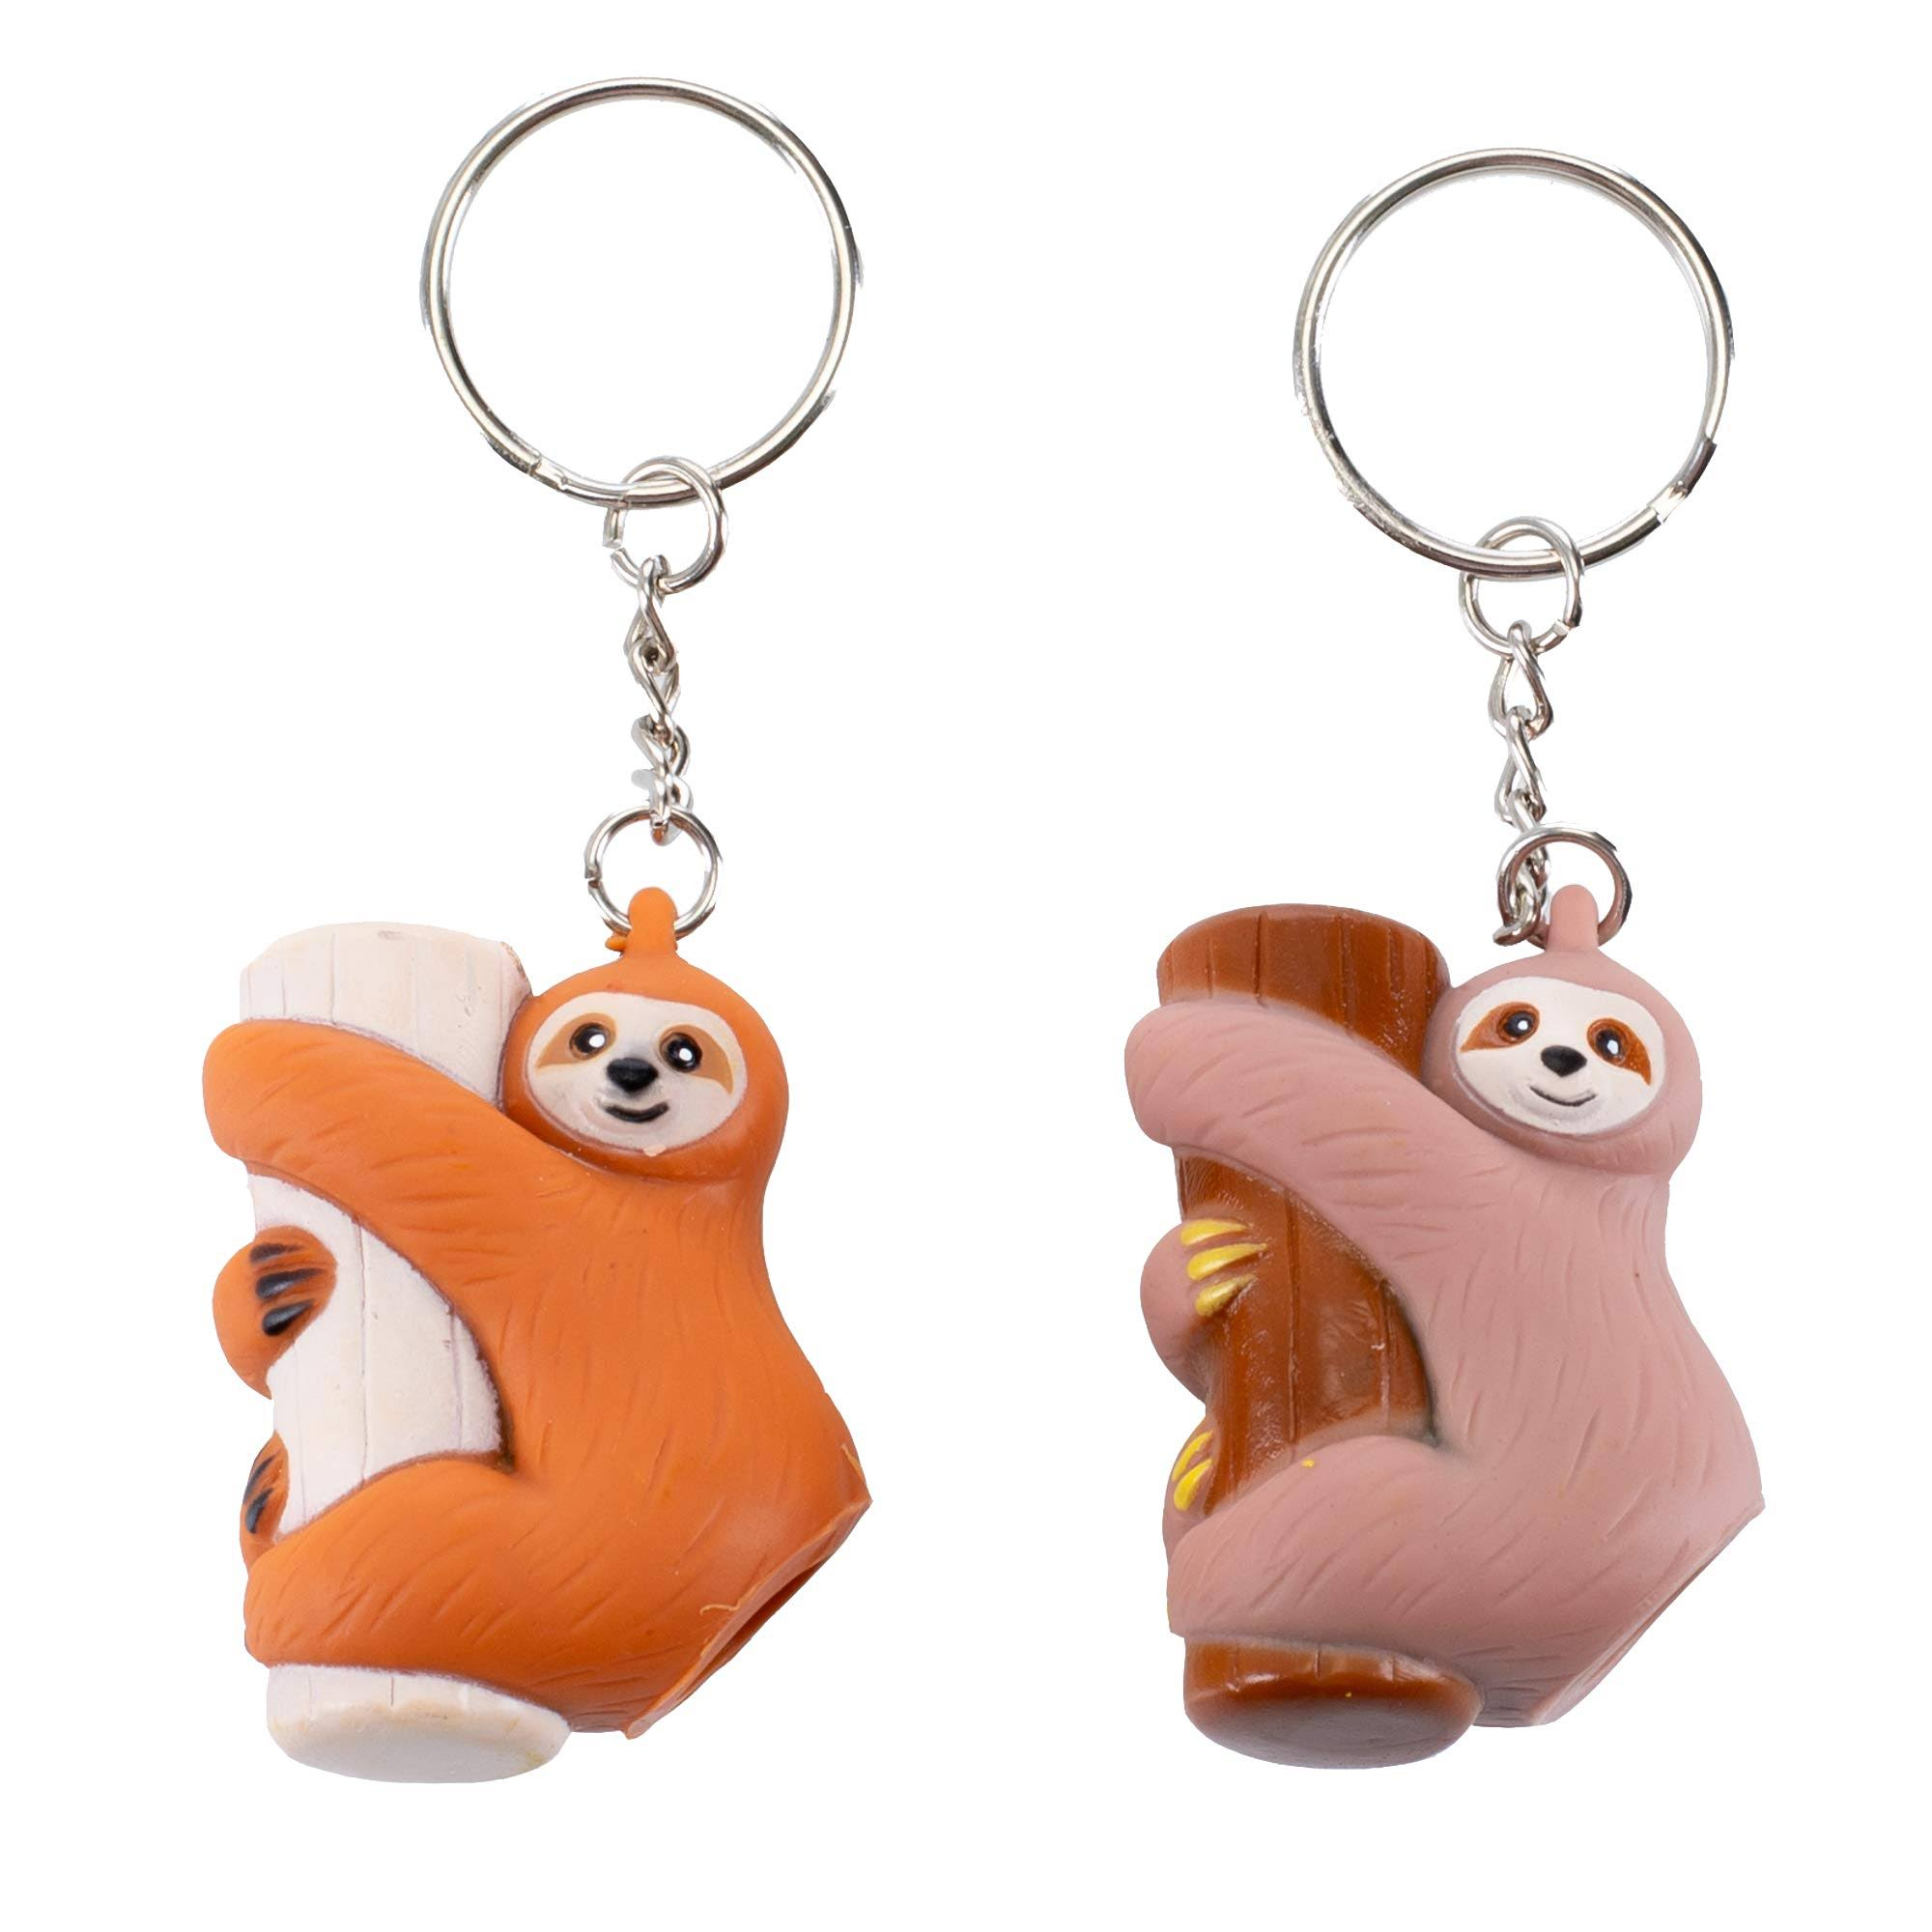 Master Toys Pooping Sloth Key Chain